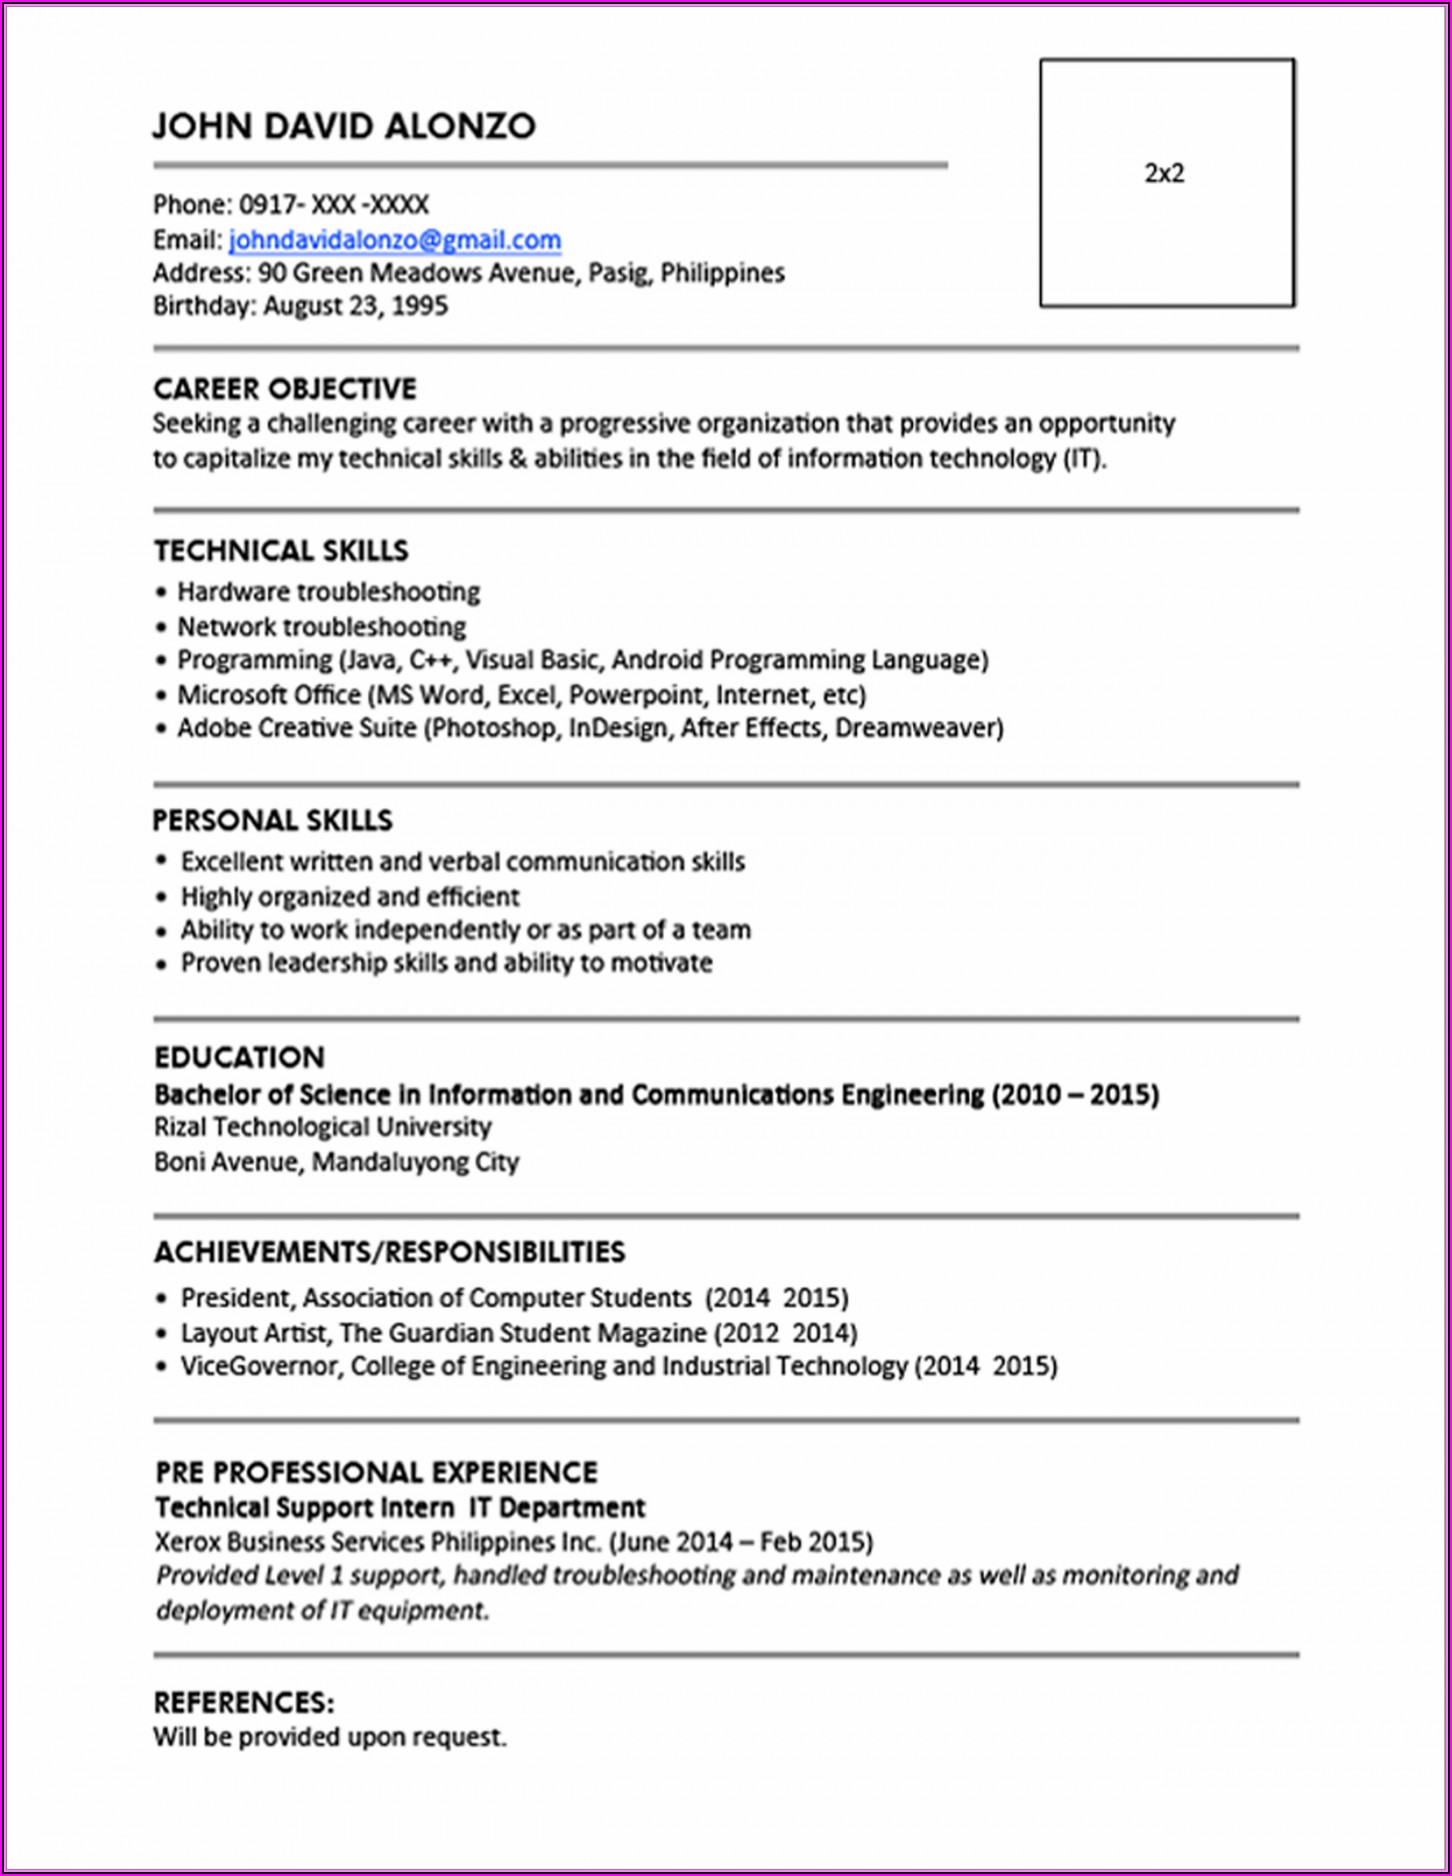 Resume Format For It Professional Freshers